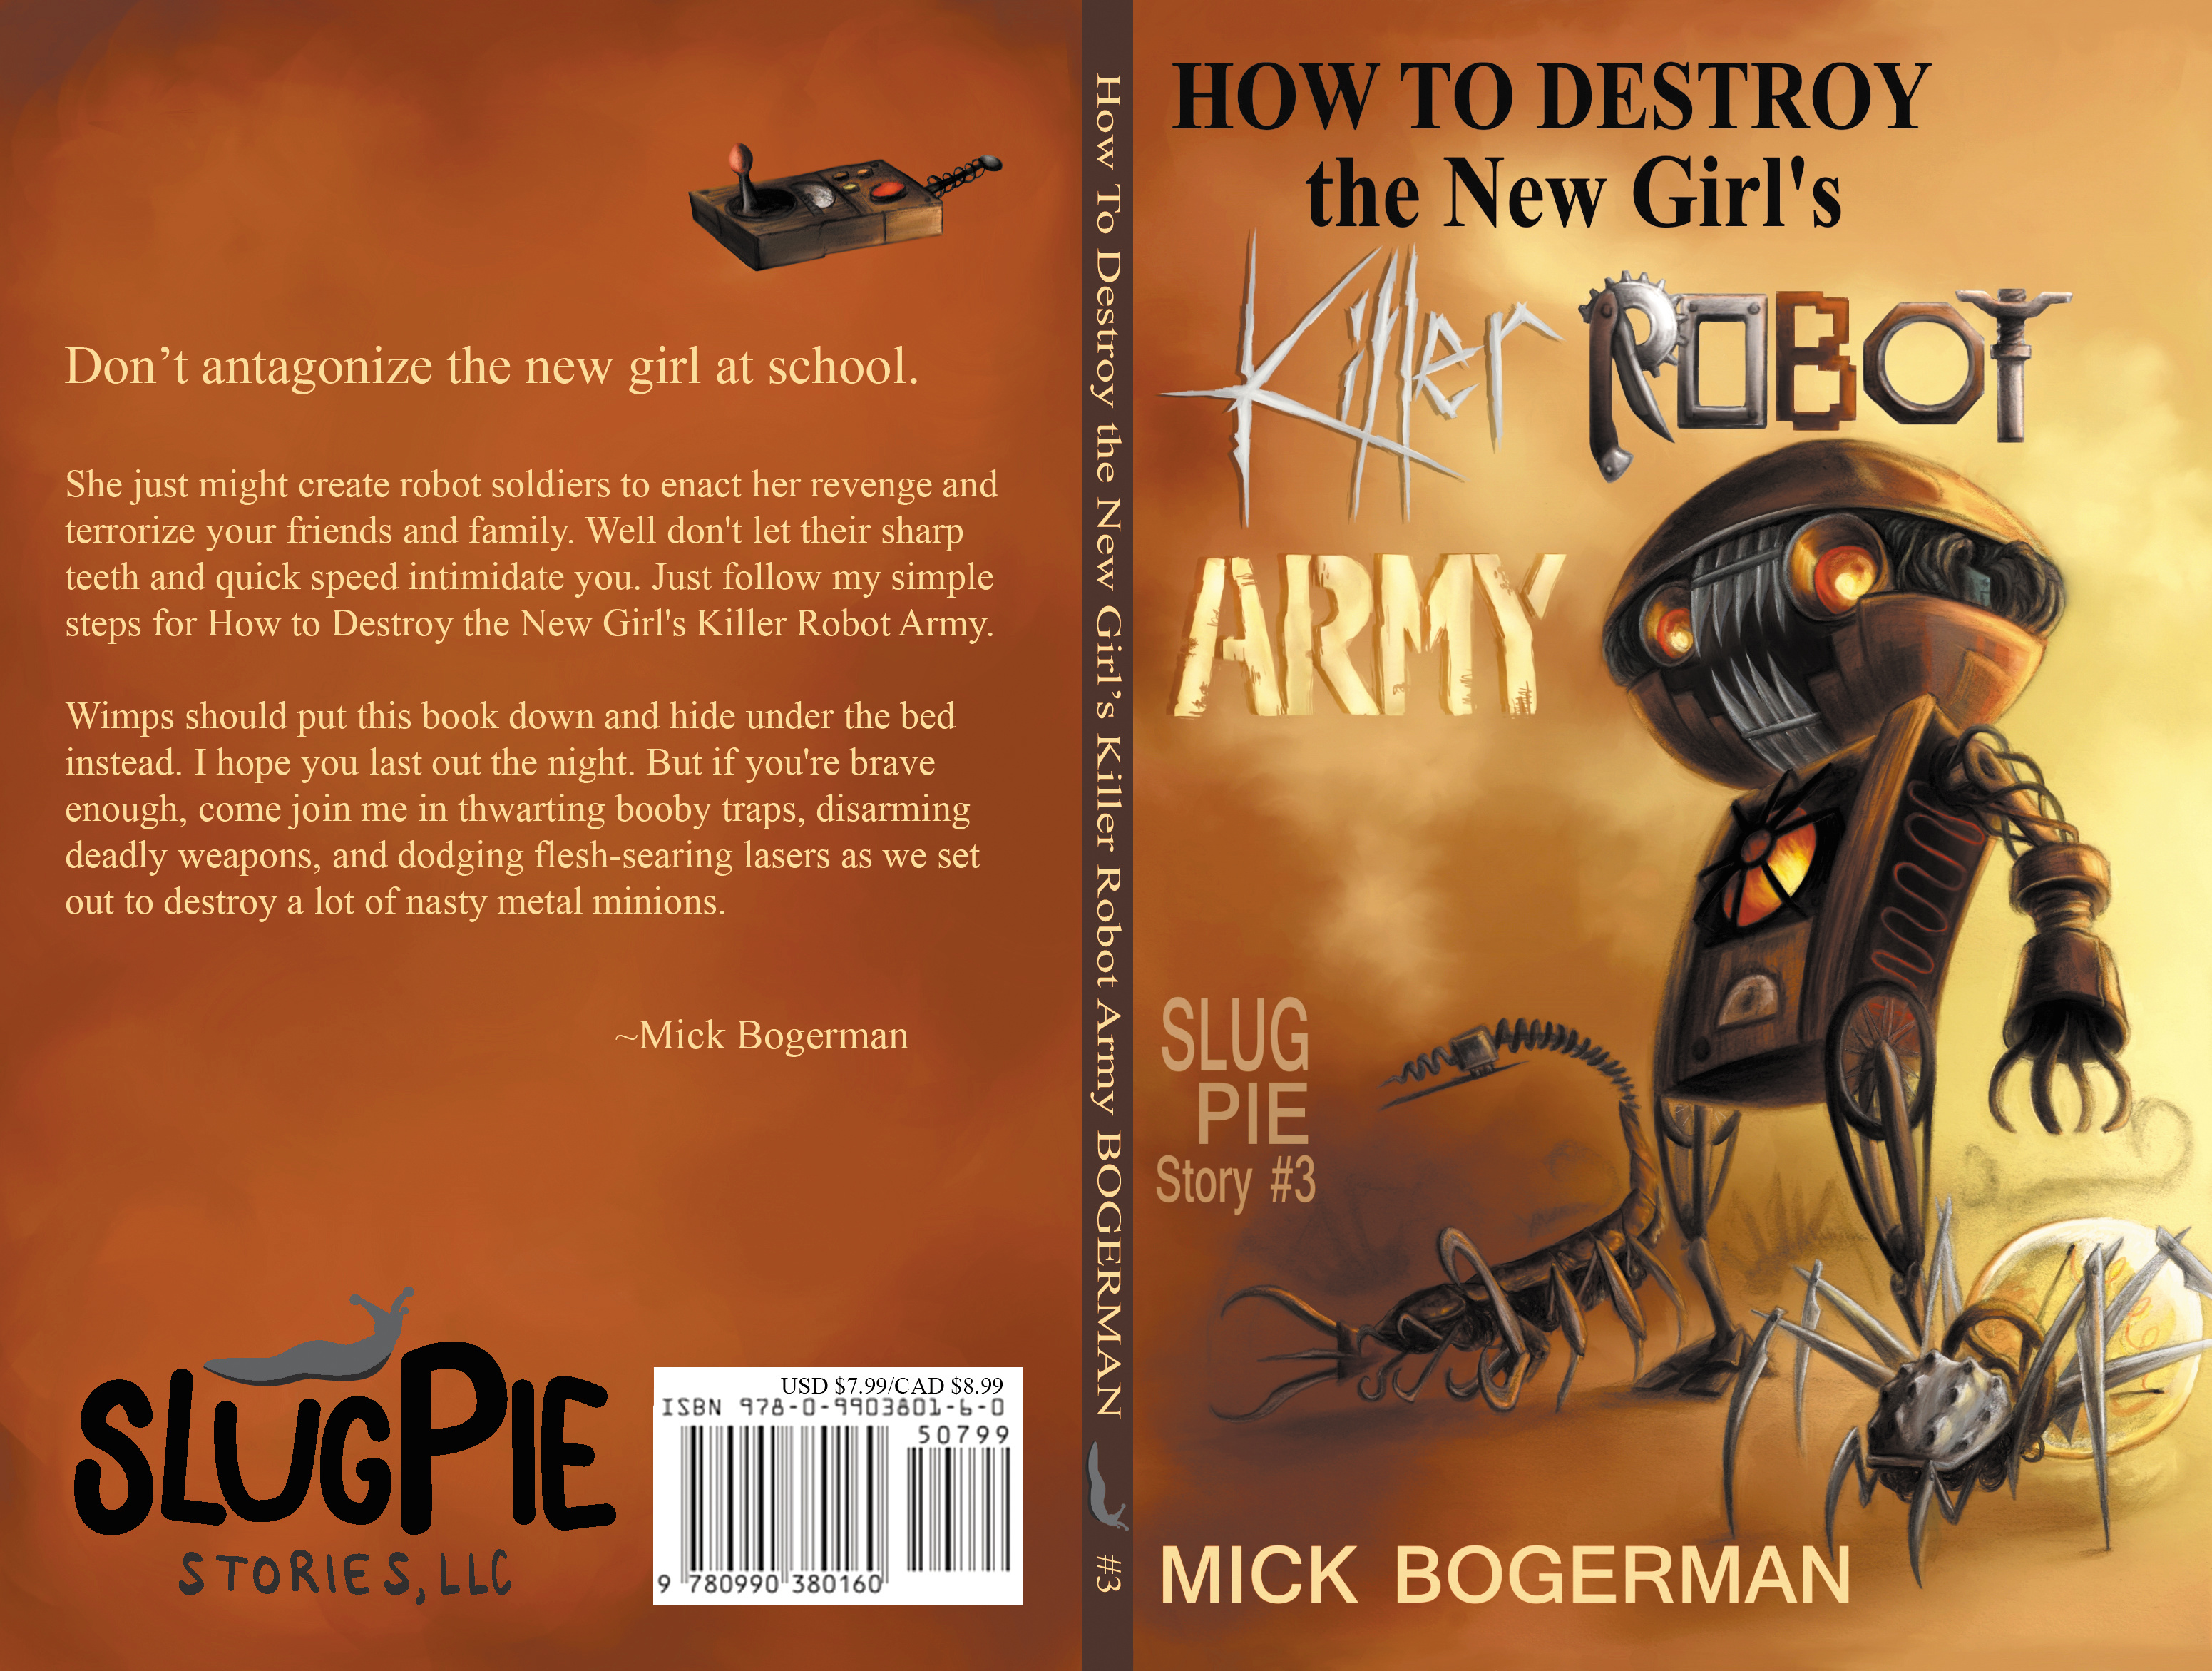 Slug Pie Stories book 3